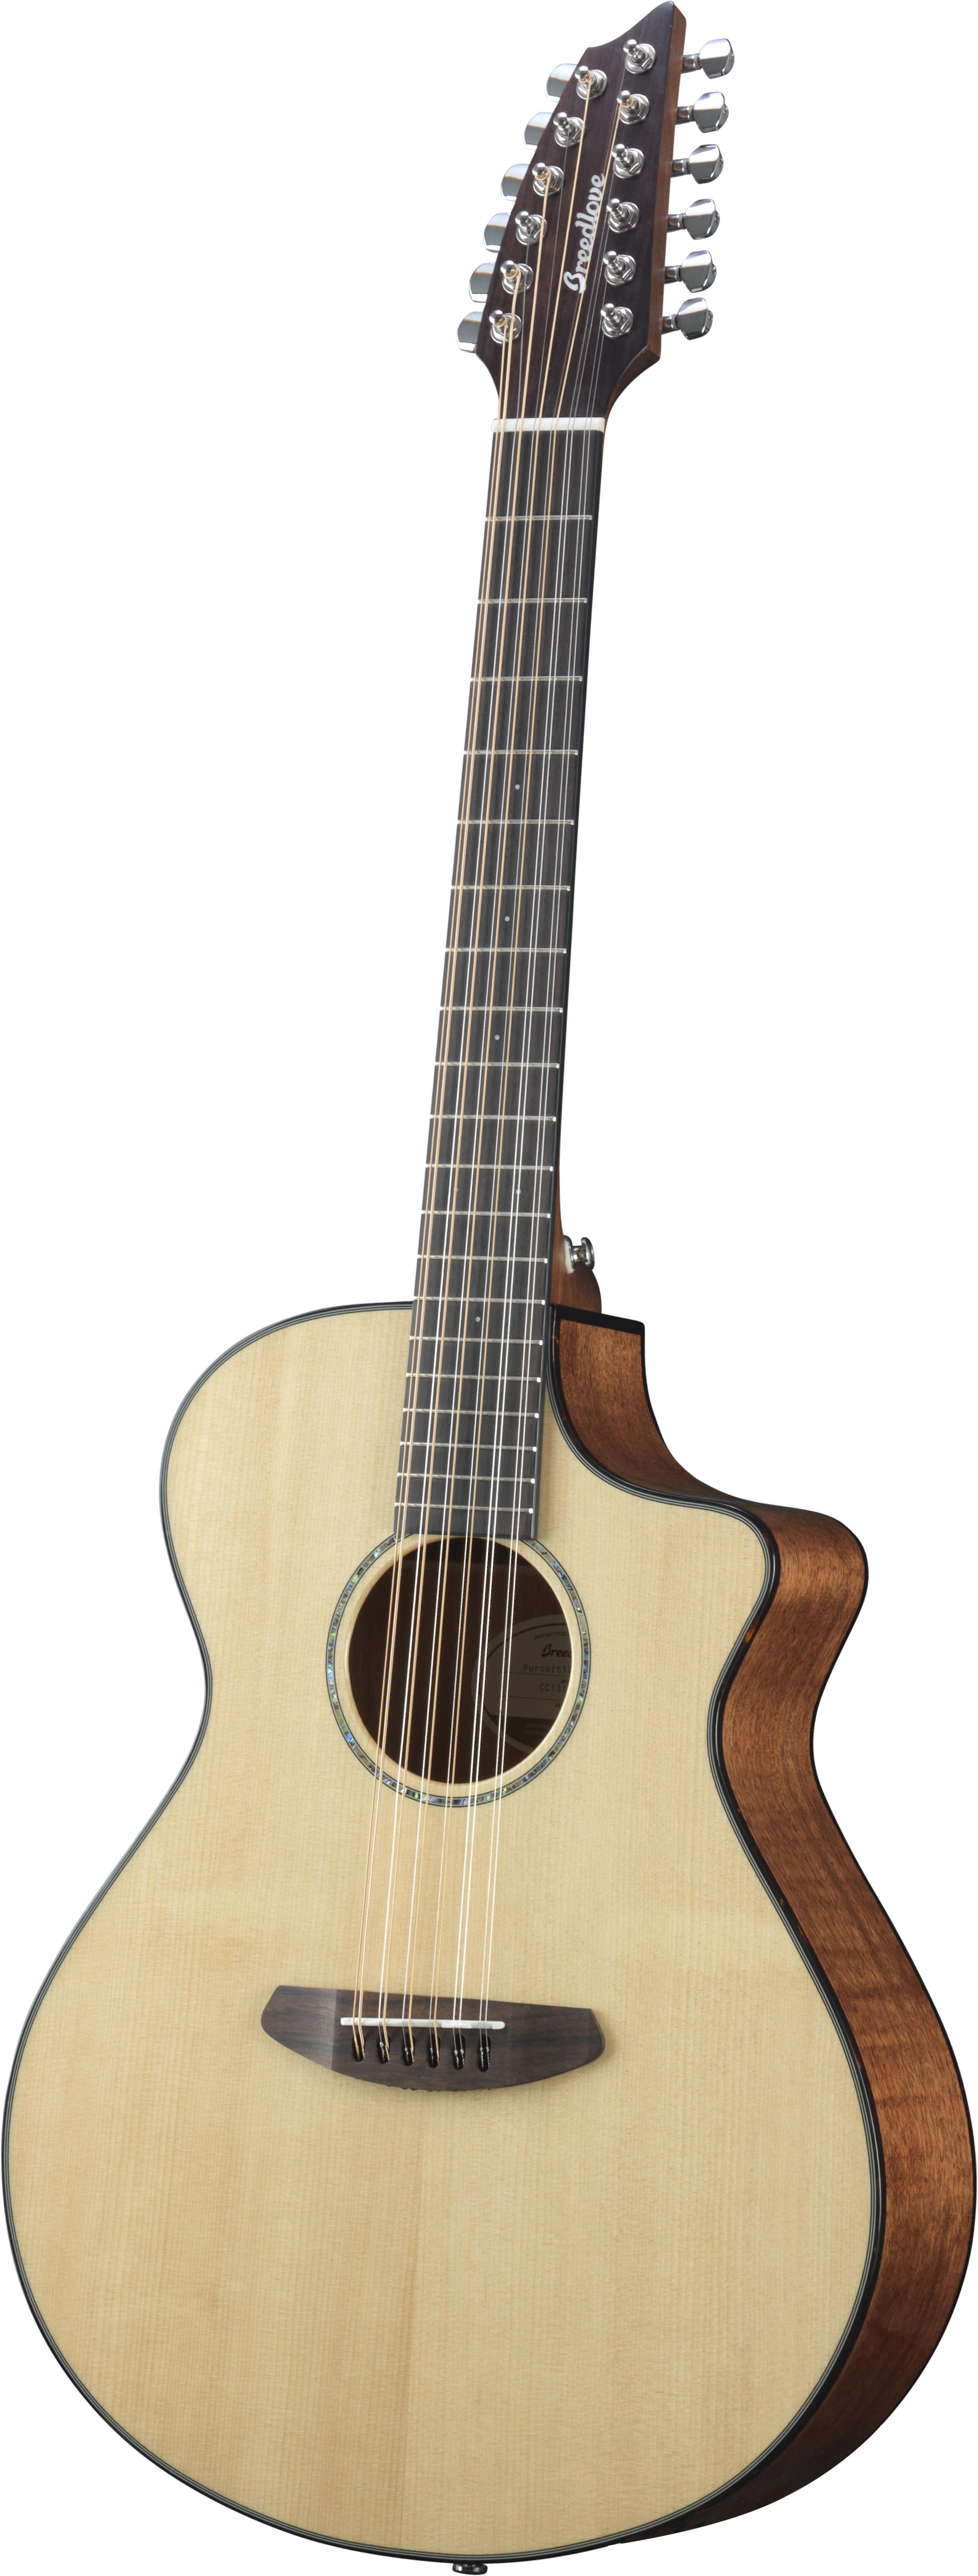 Breedlove Pursuit Concert 12-String CE